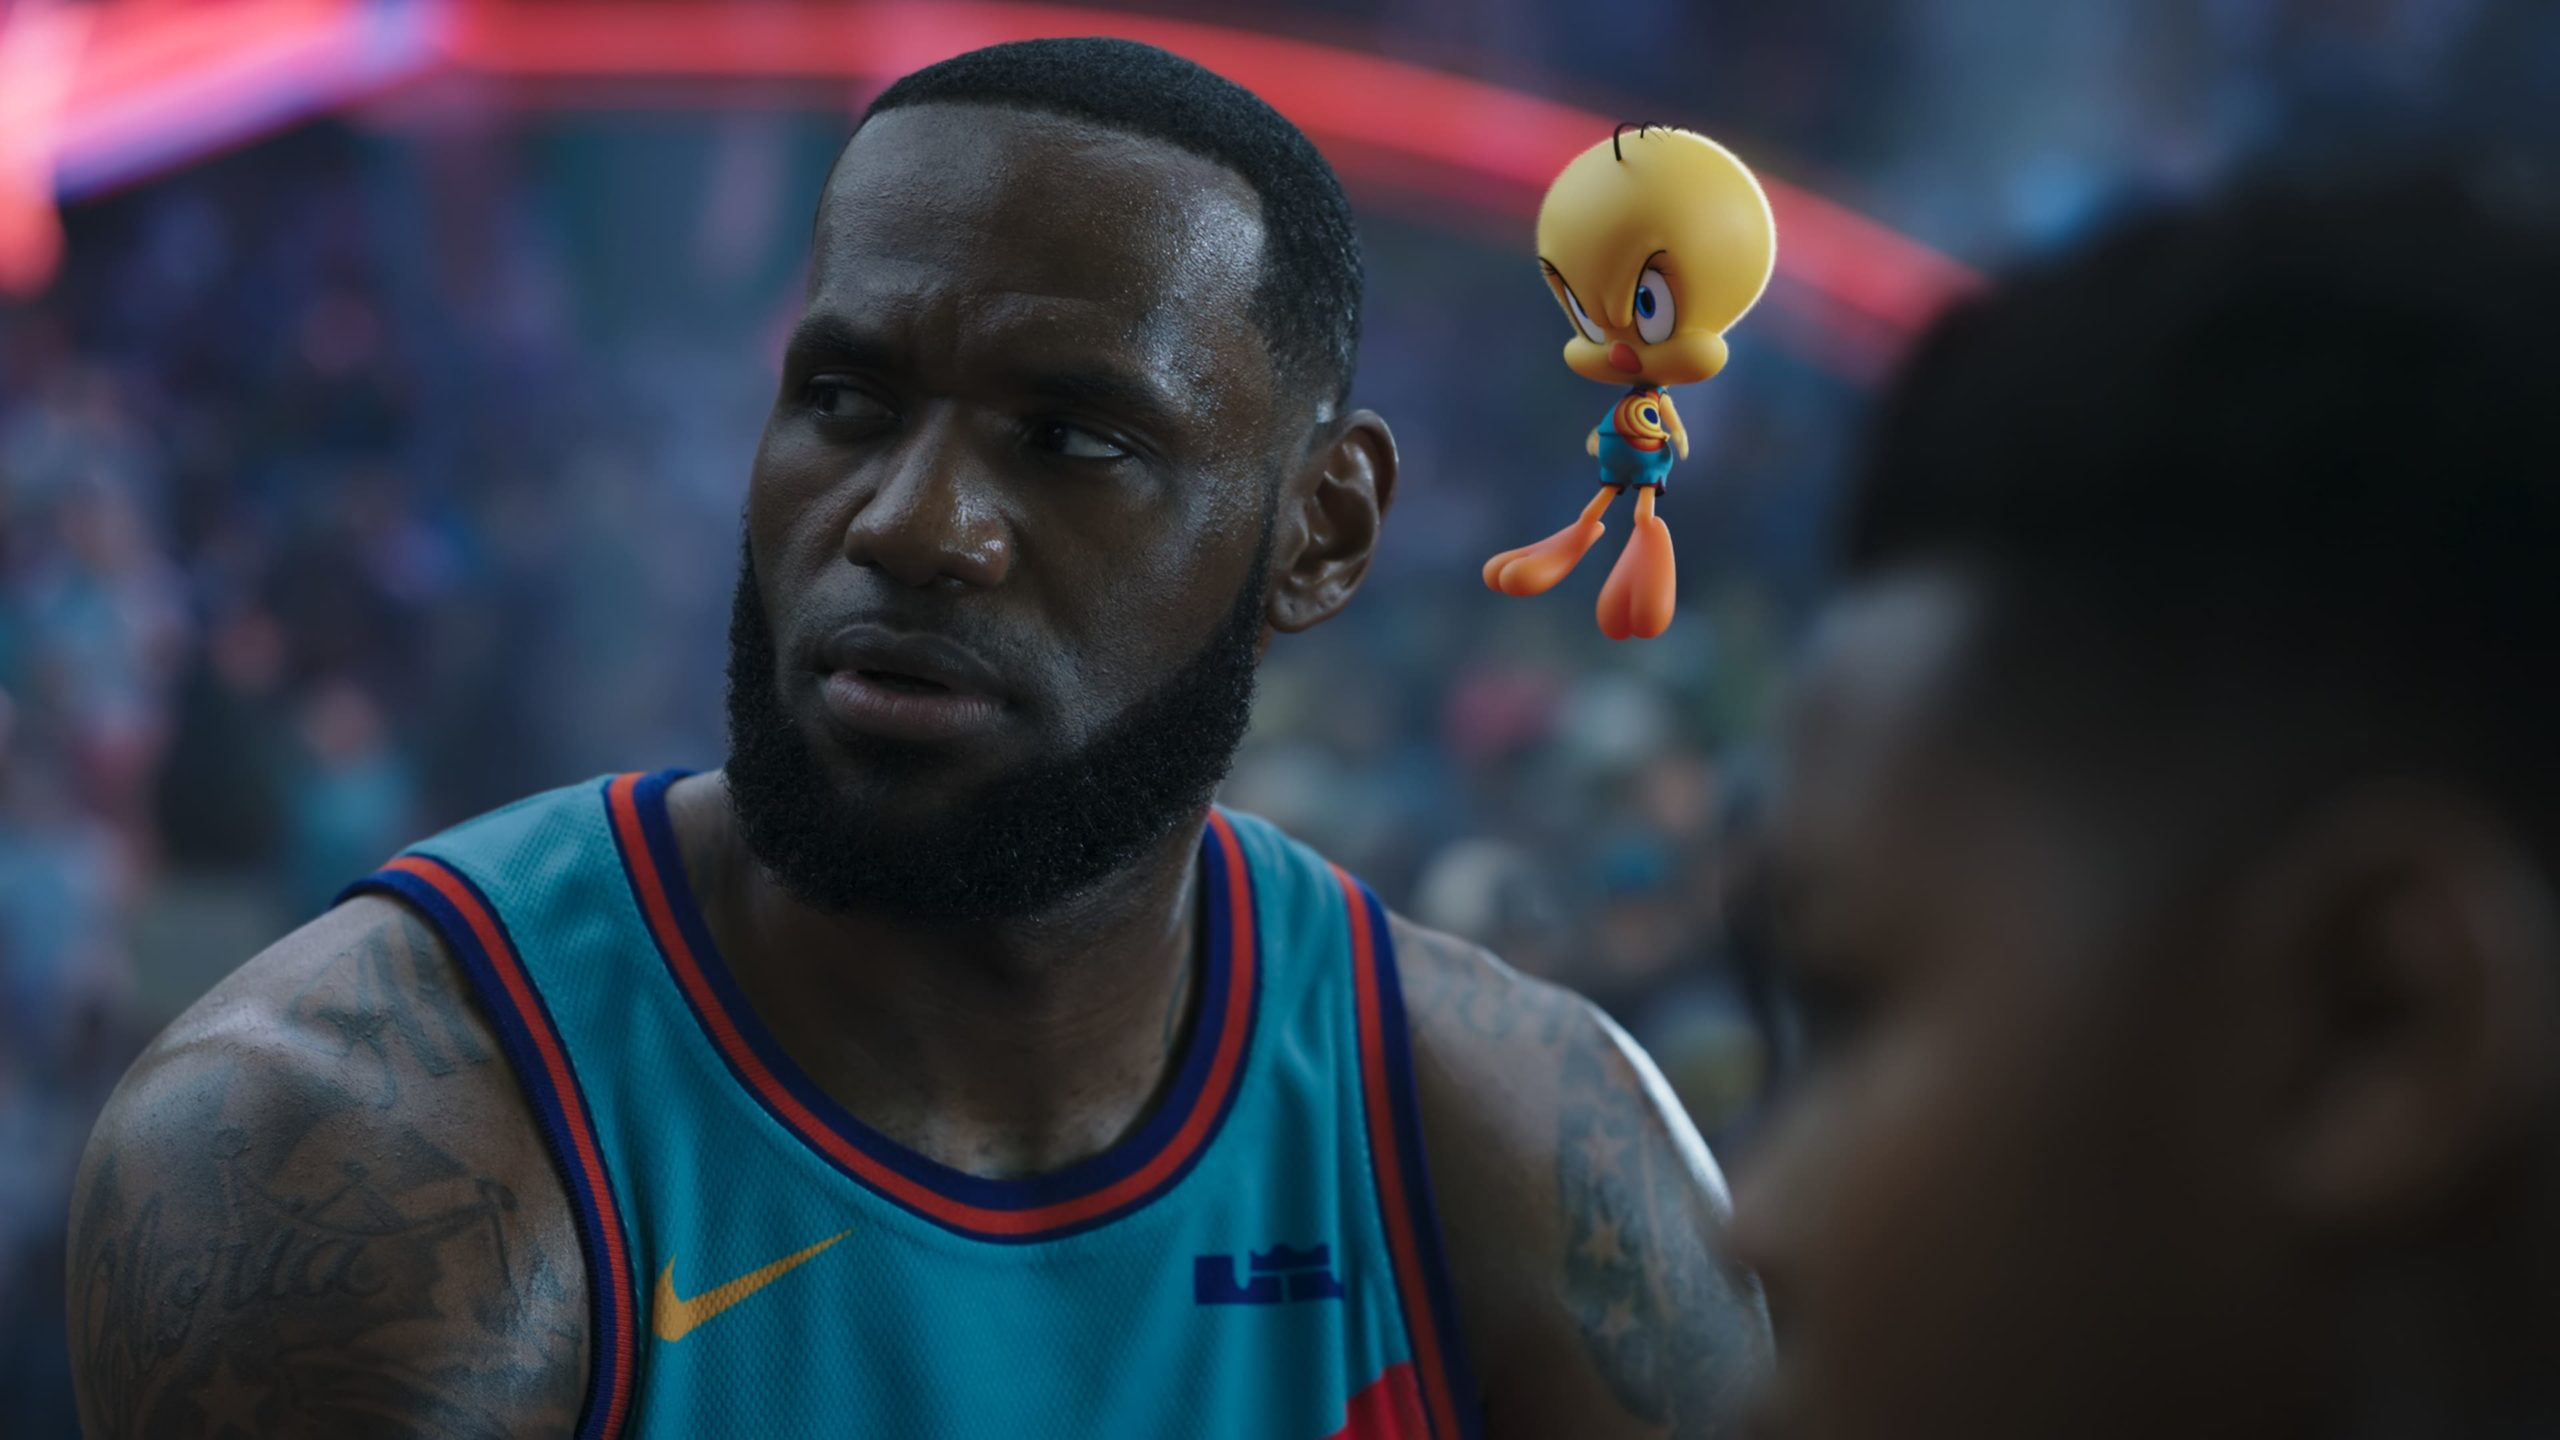 Space Jam: A New Legacy backdrop